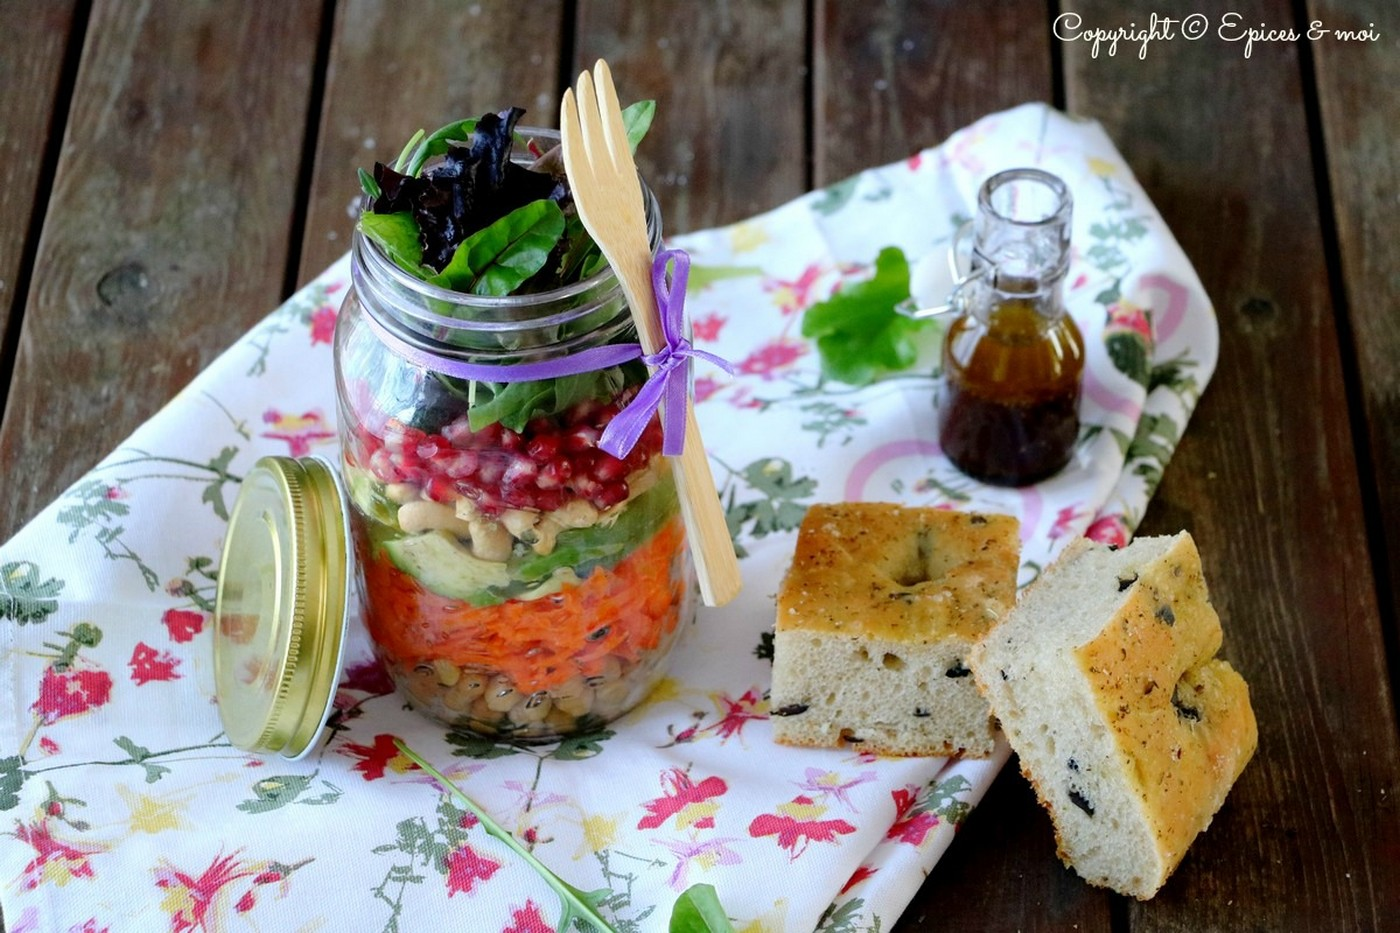 Epices & moi Foccacia salade huile d'olive 6